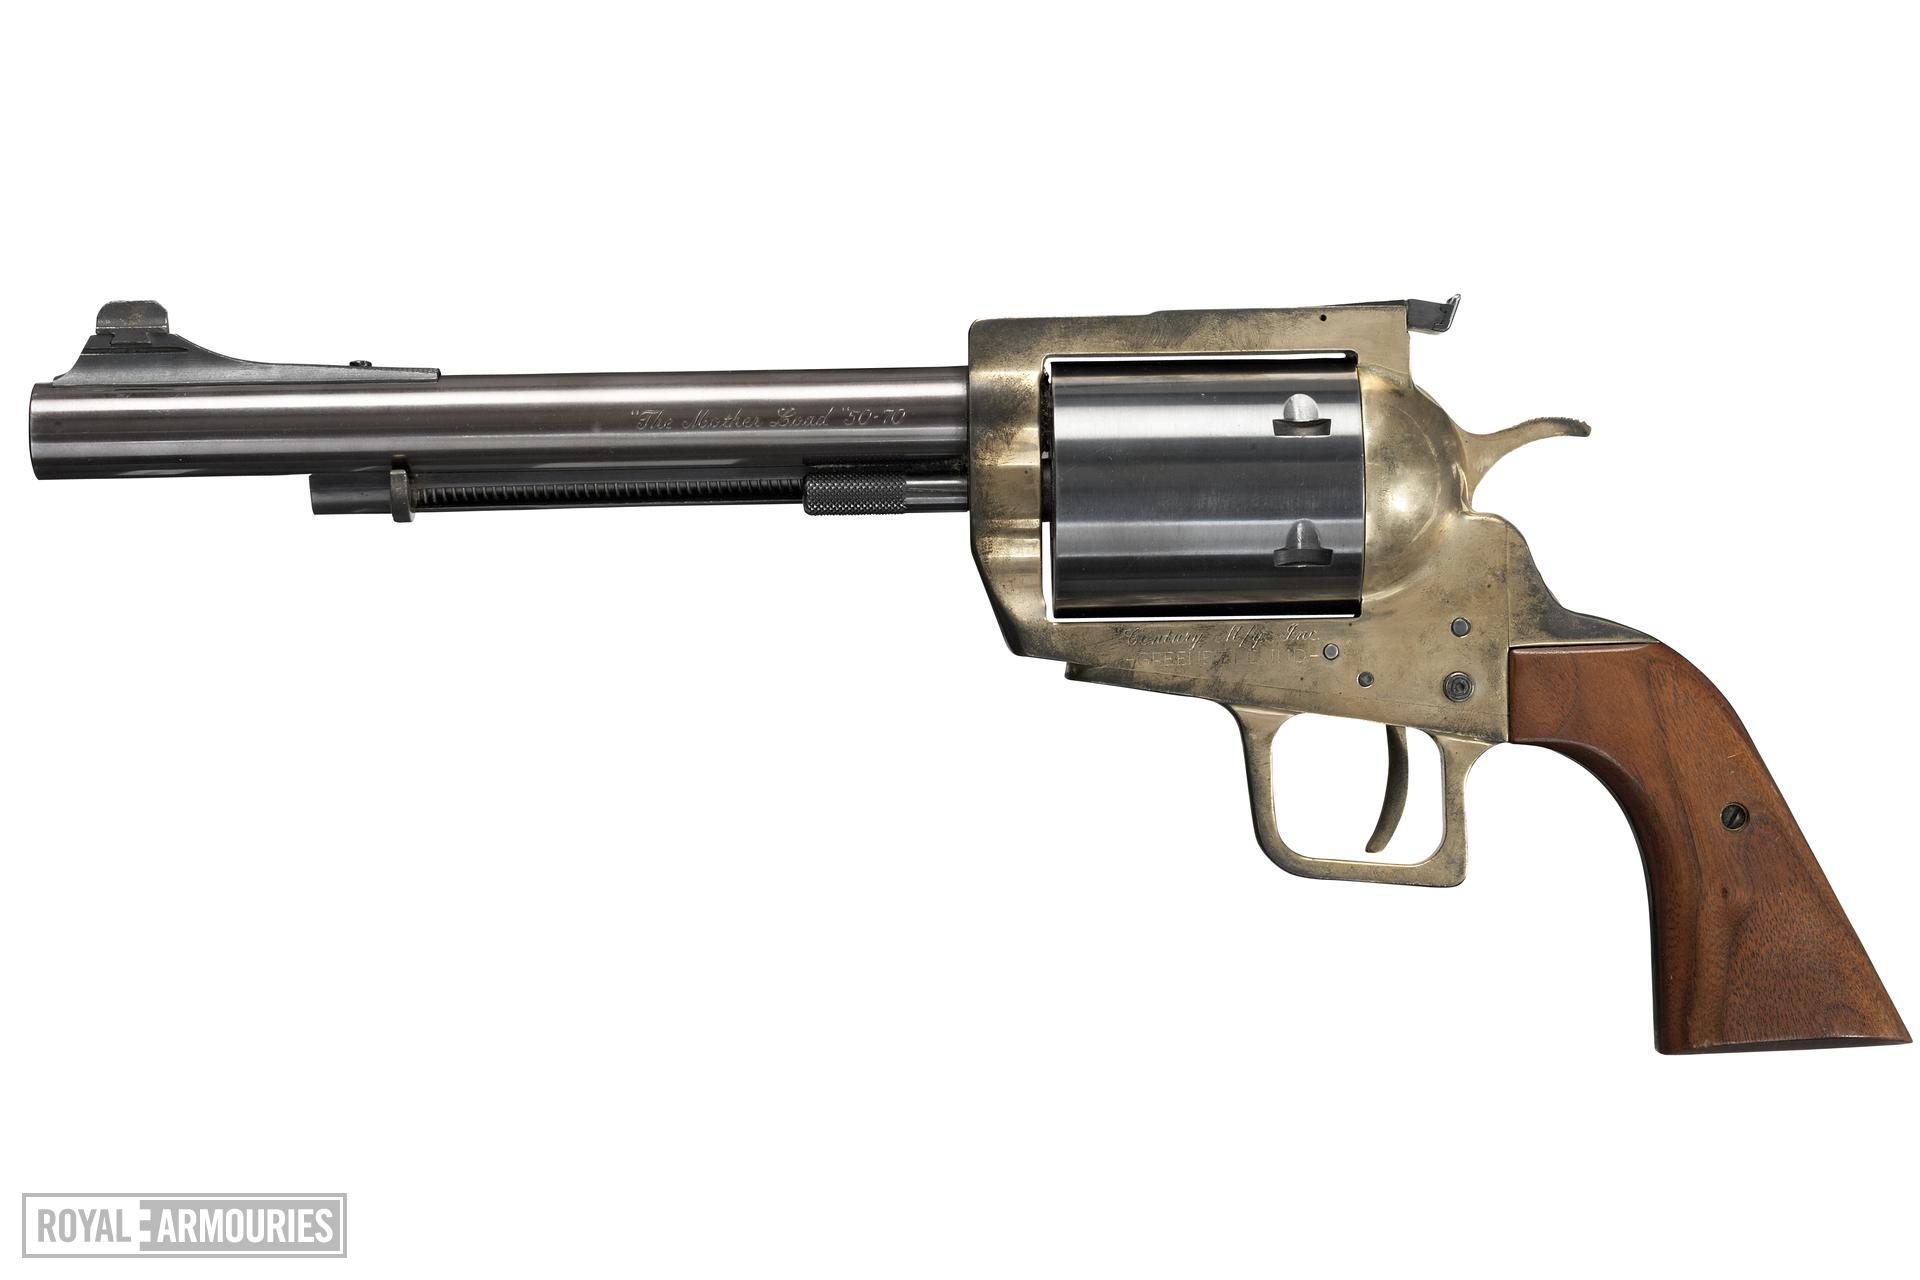 Centrefire six-shot revolver - Century Model 500